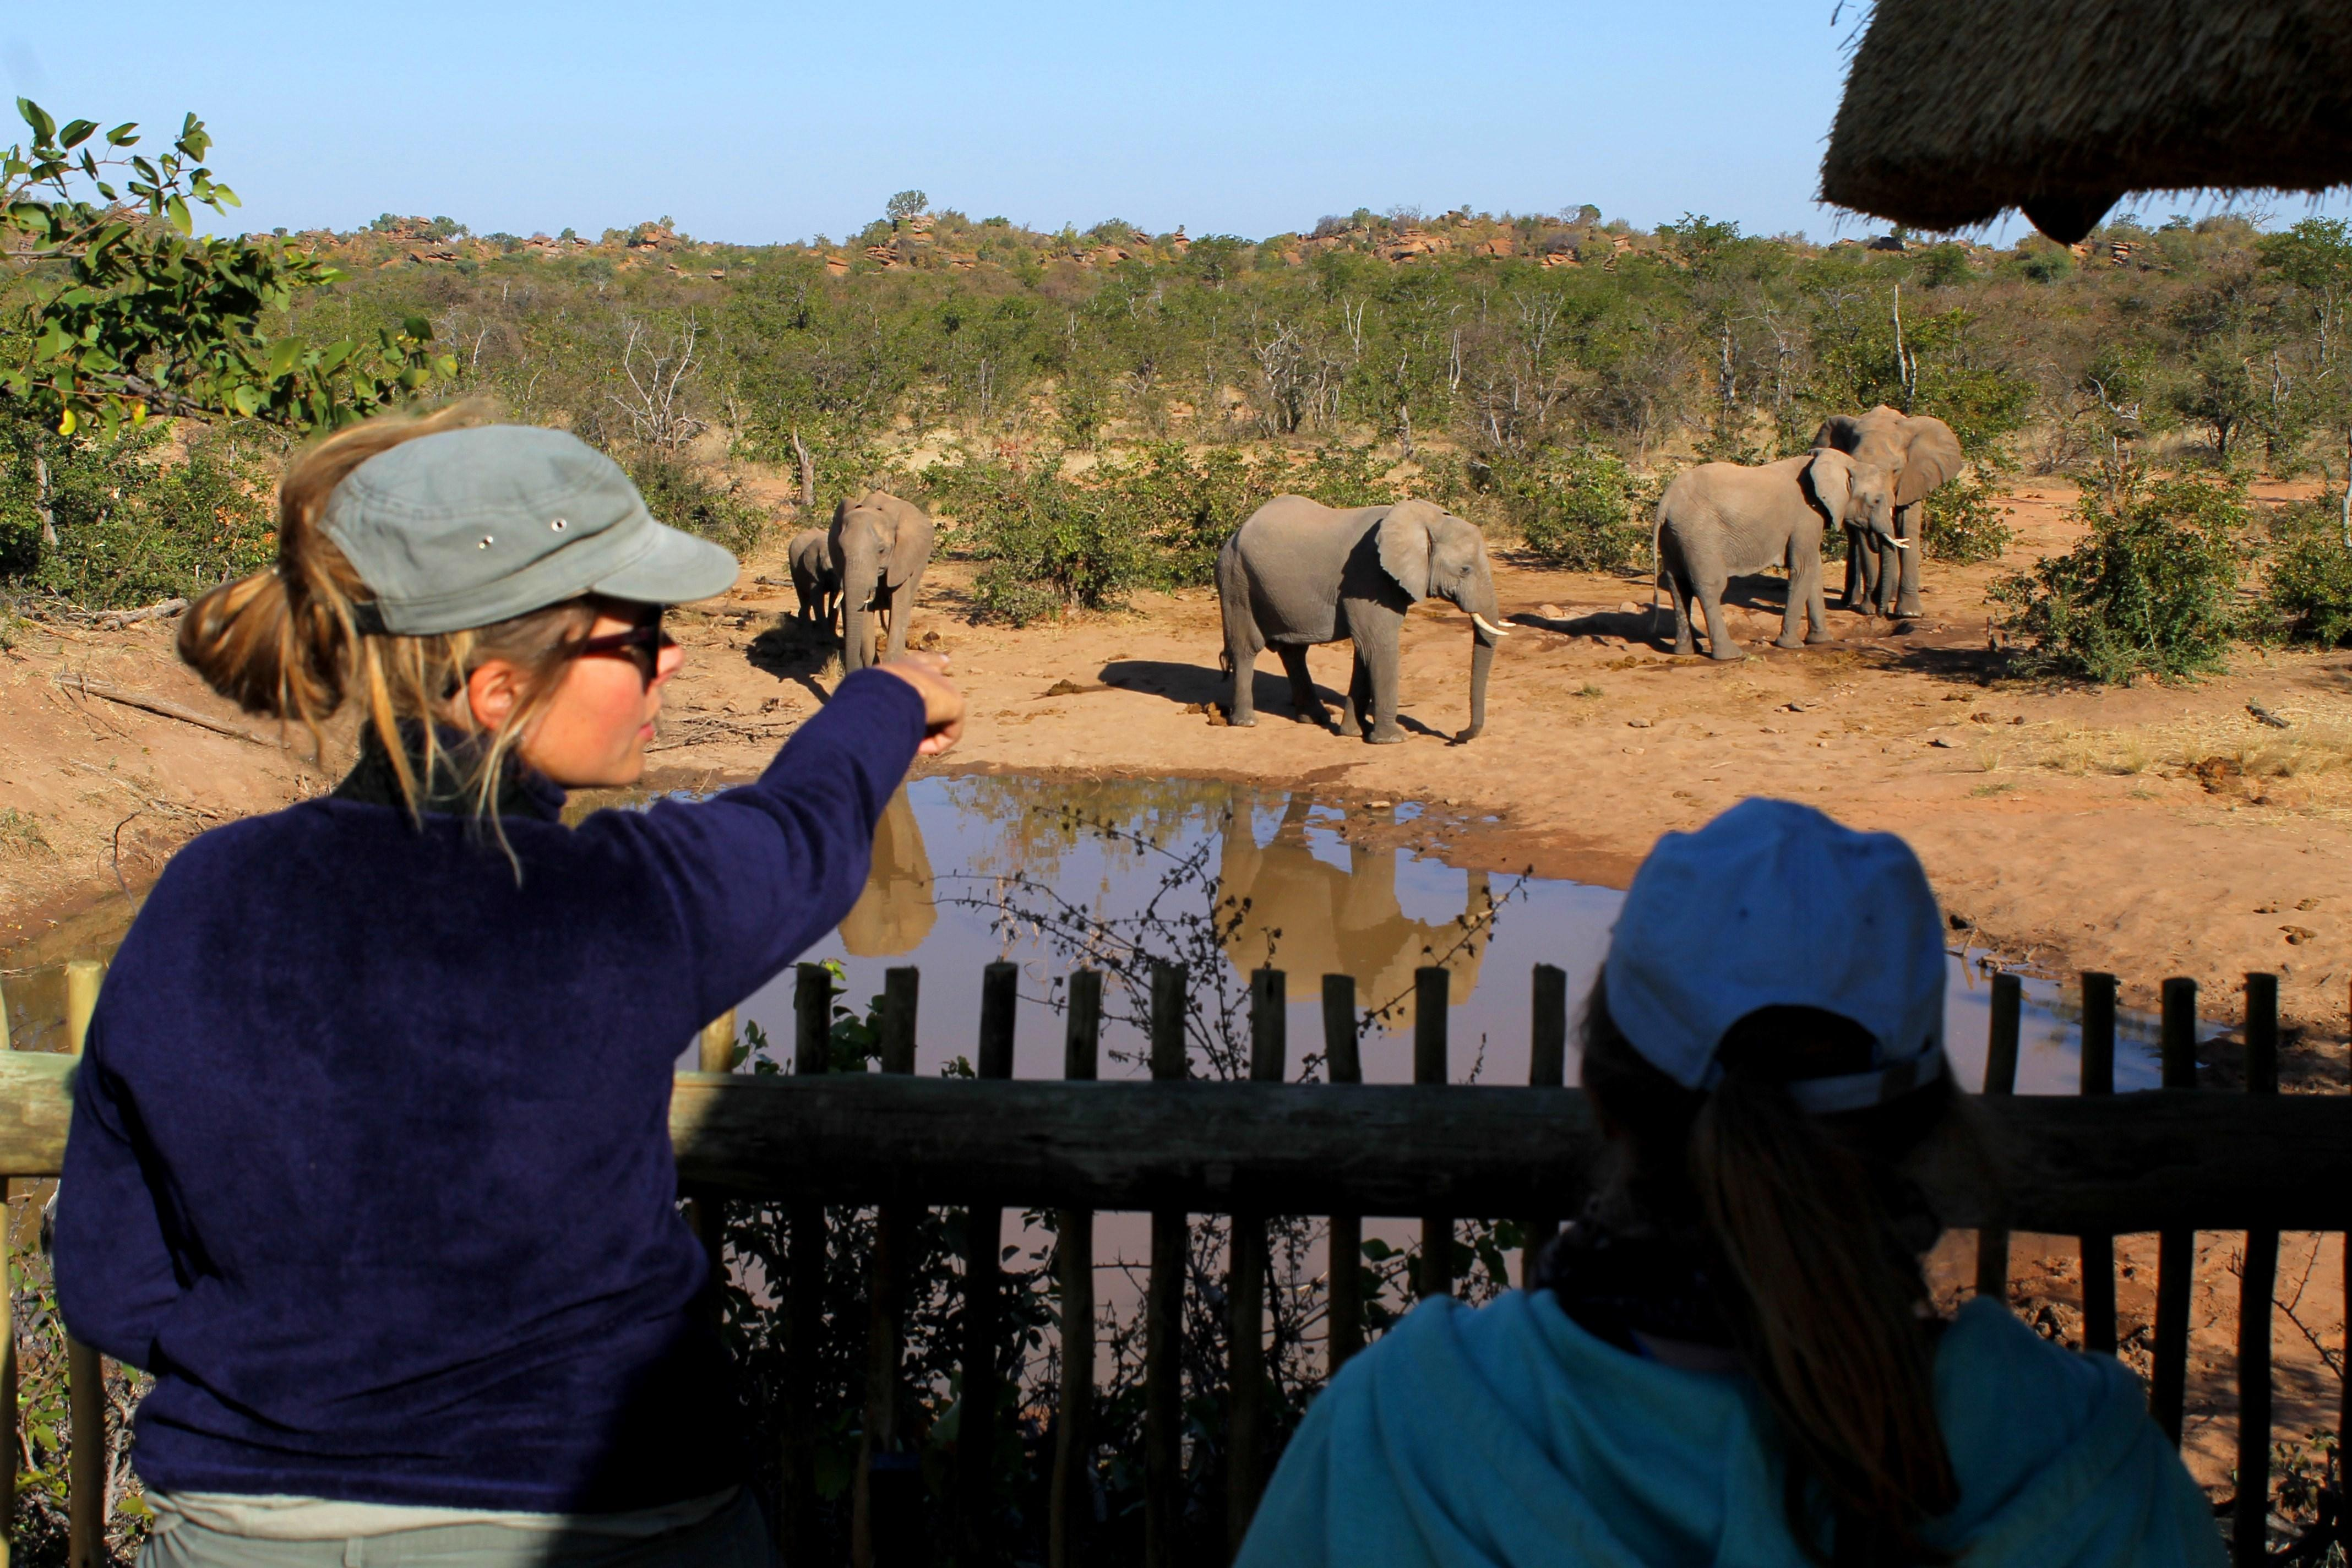 Projects Abroad volunteers help with vital elephant conservation work in Botswana on our placement for teenagers